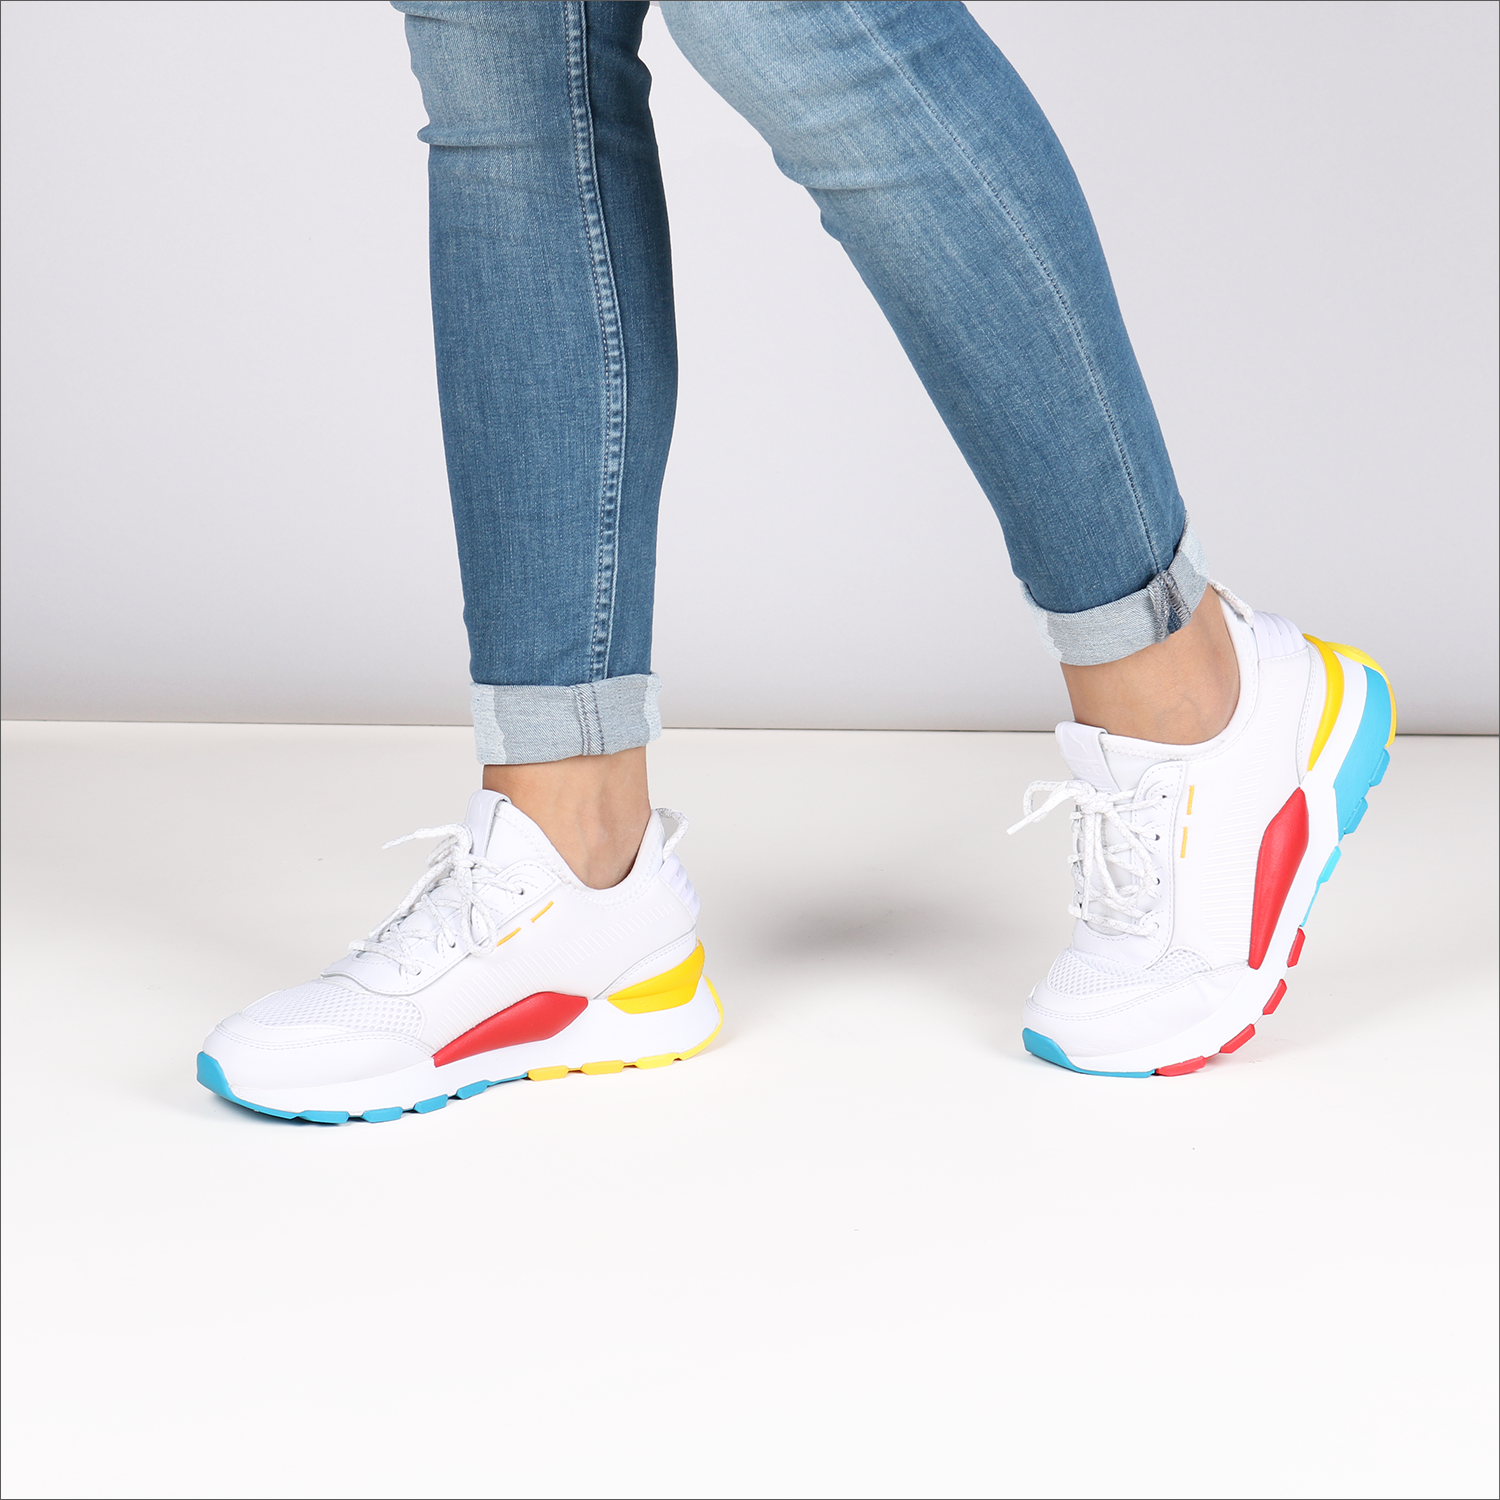 92bfba83792 Witte PUMA Sneakers RS-0 PLAY DAMES - Omoda.nl